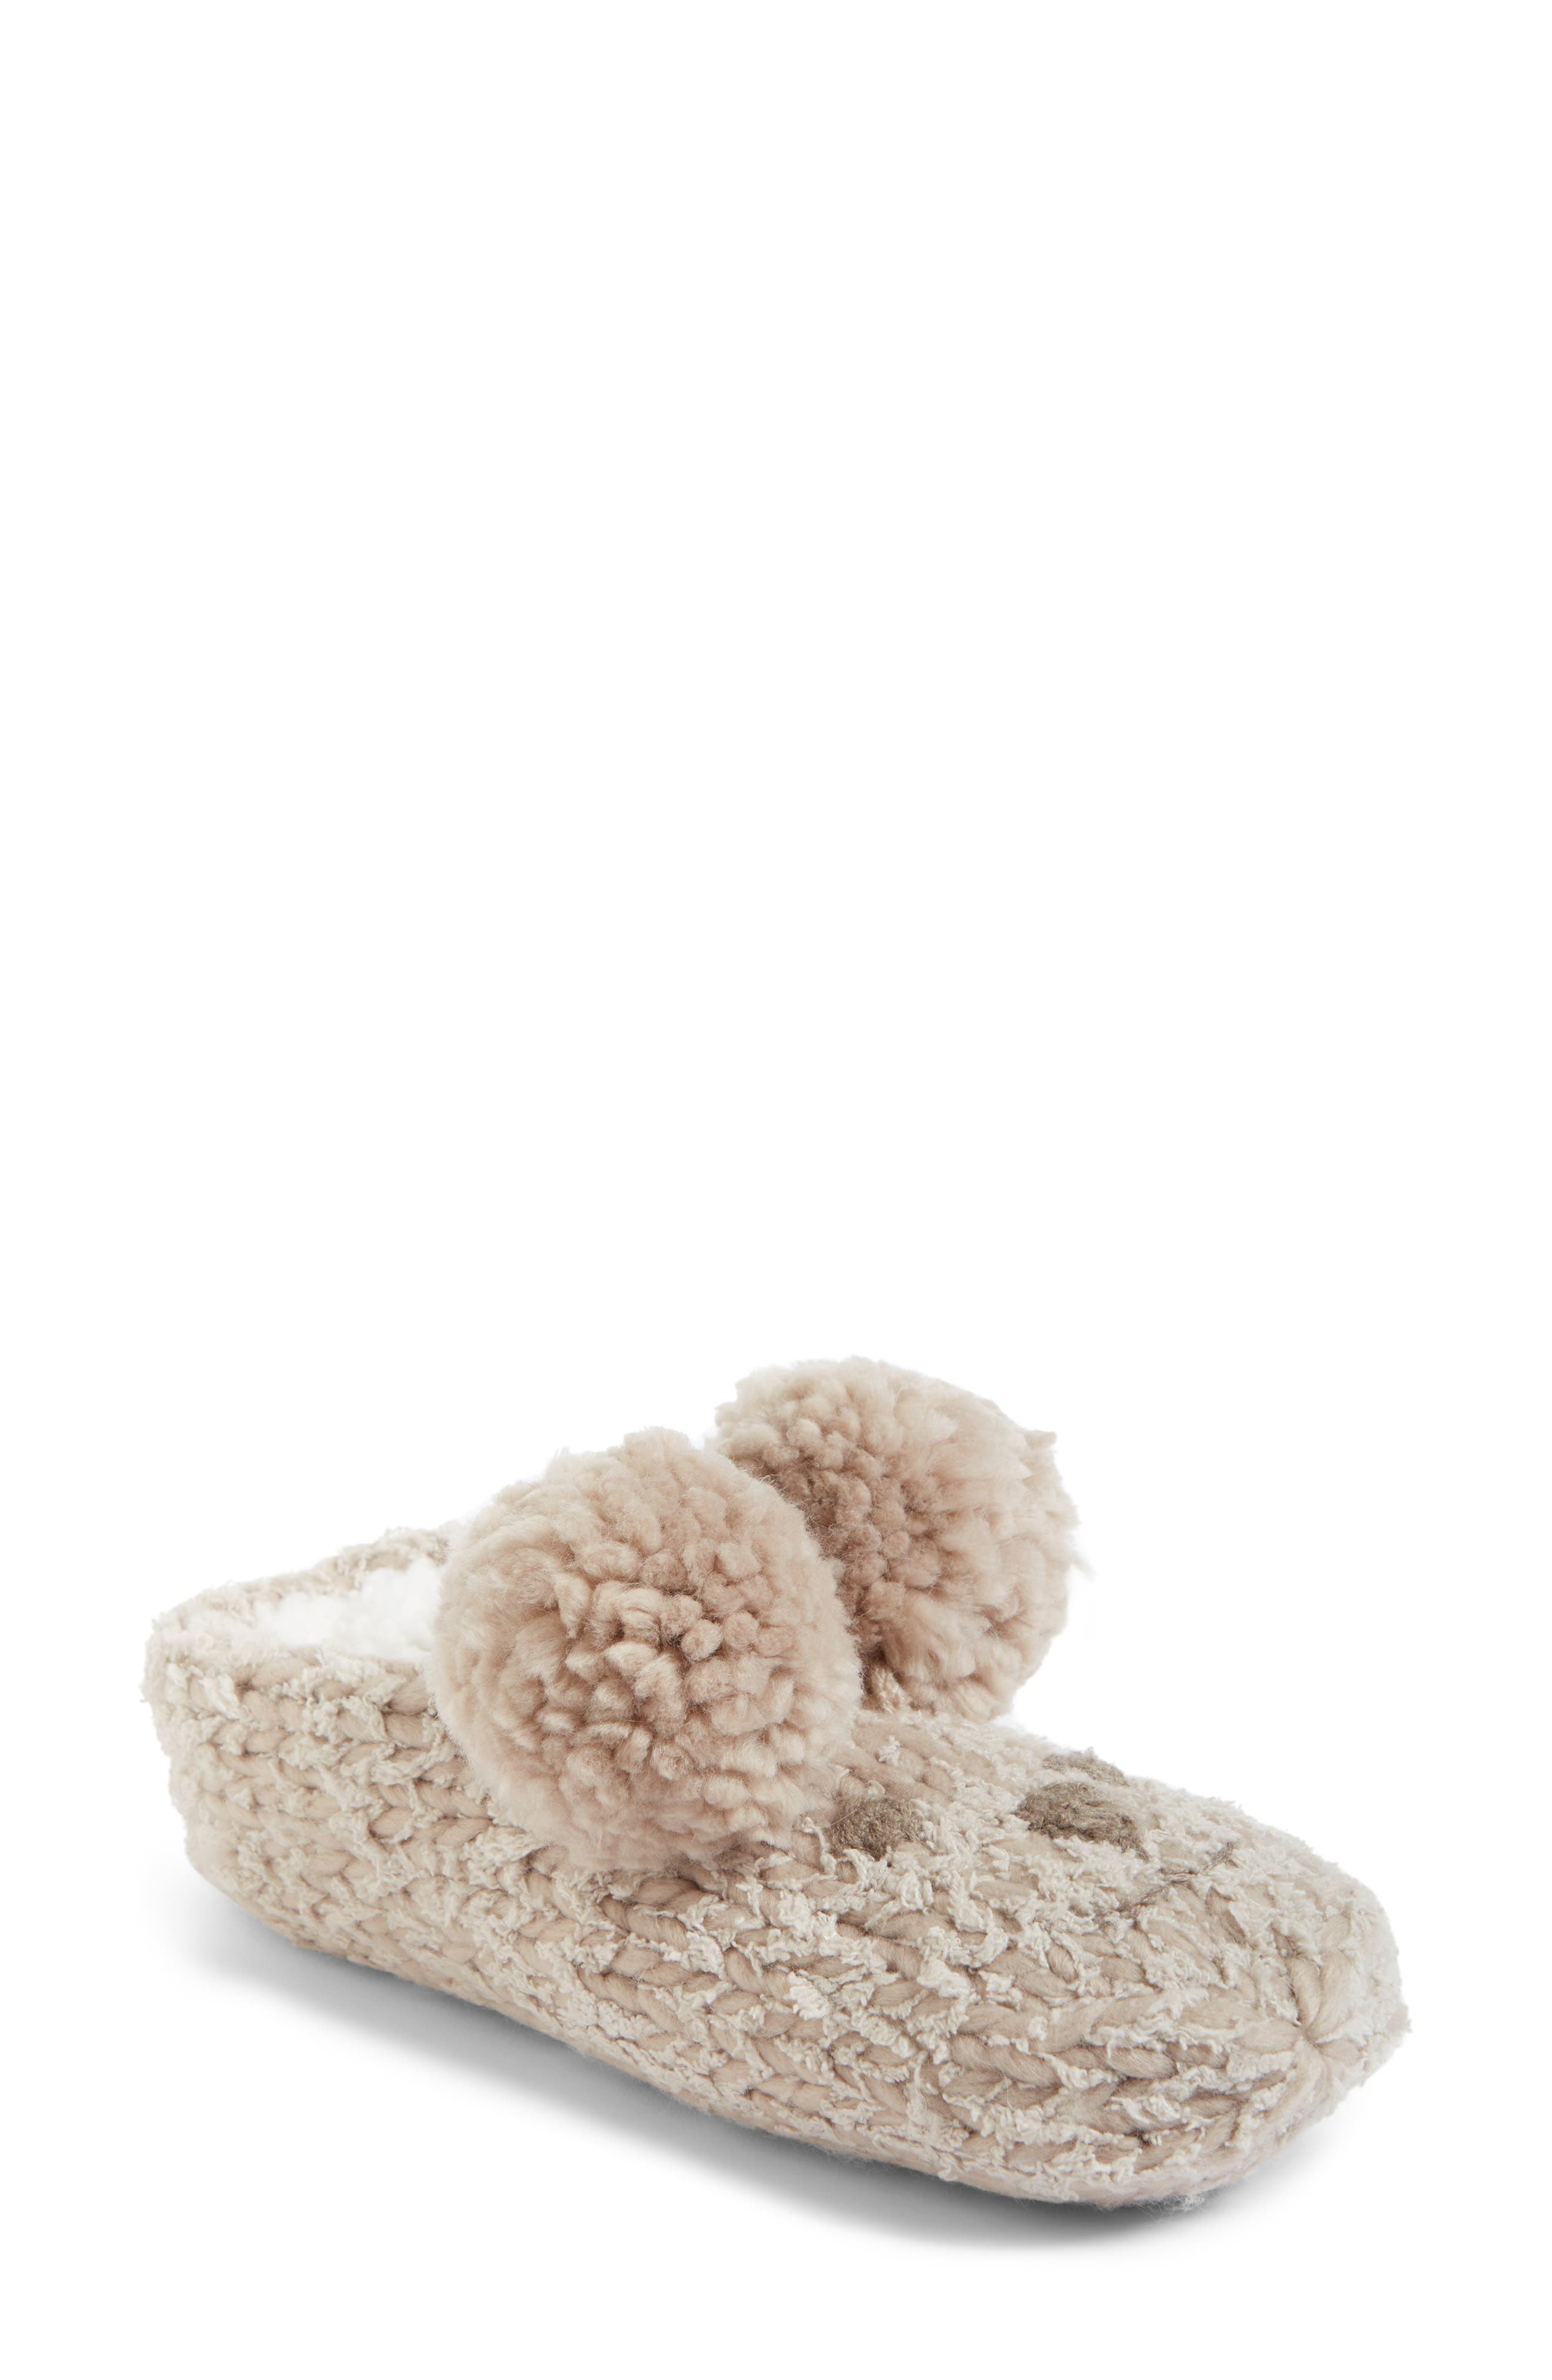 Lemon Iceland Bear Bootie Slippers